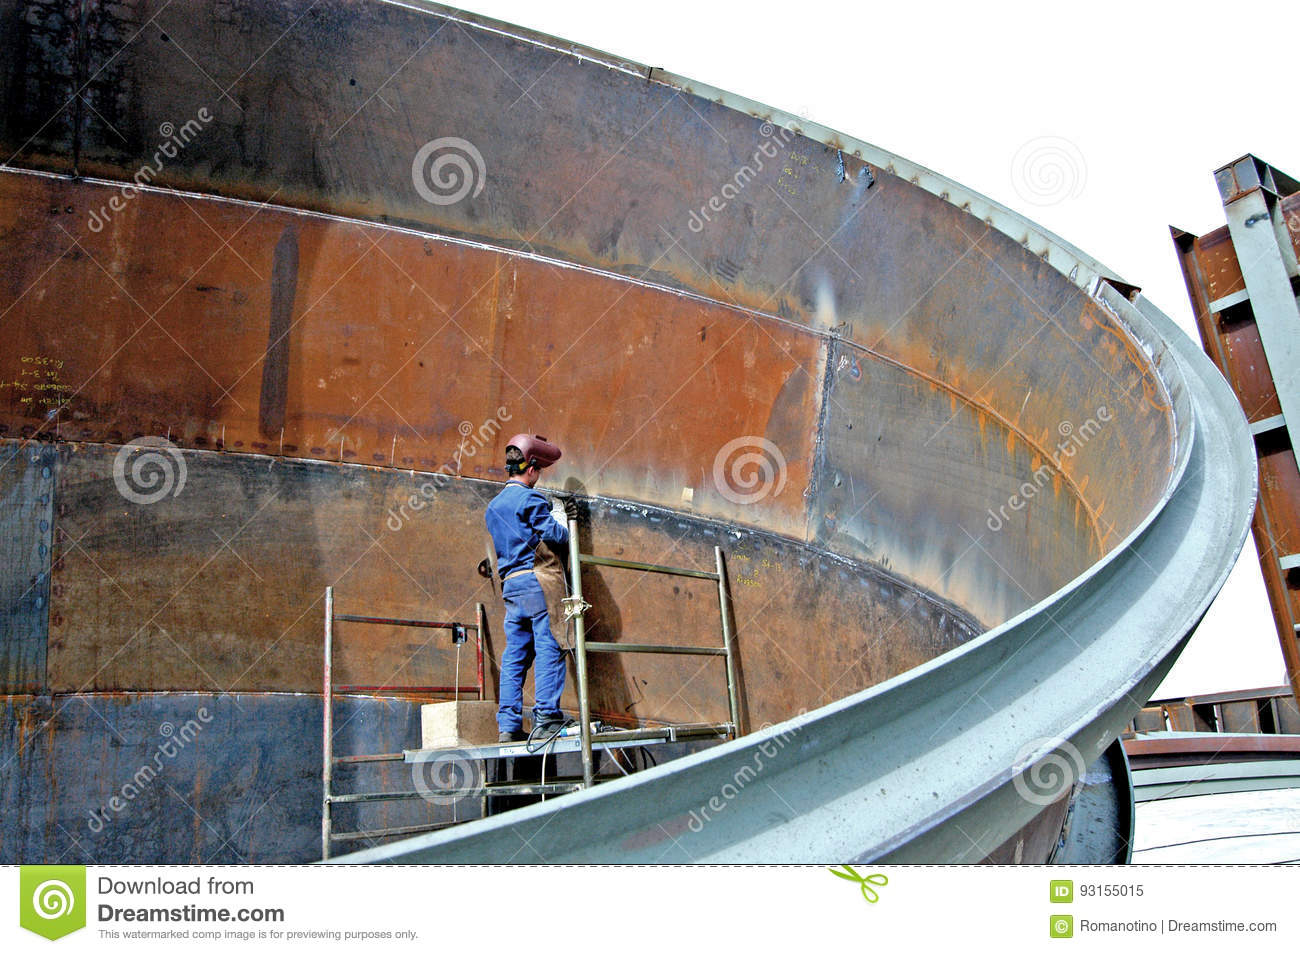 Metalwork Construction Of Large Tubes With Workers Working Welding